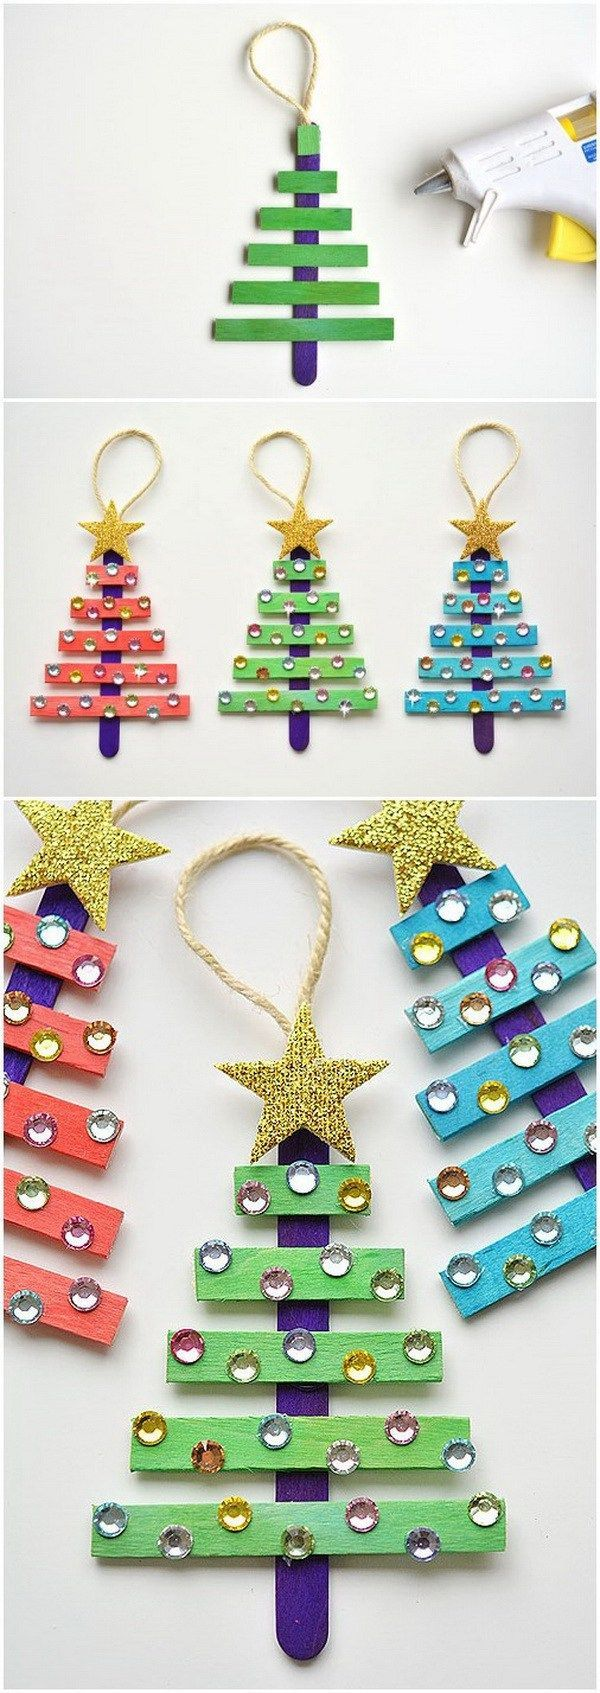 30+ Creative DIY Christmas Ornament Ideas #creativegifts